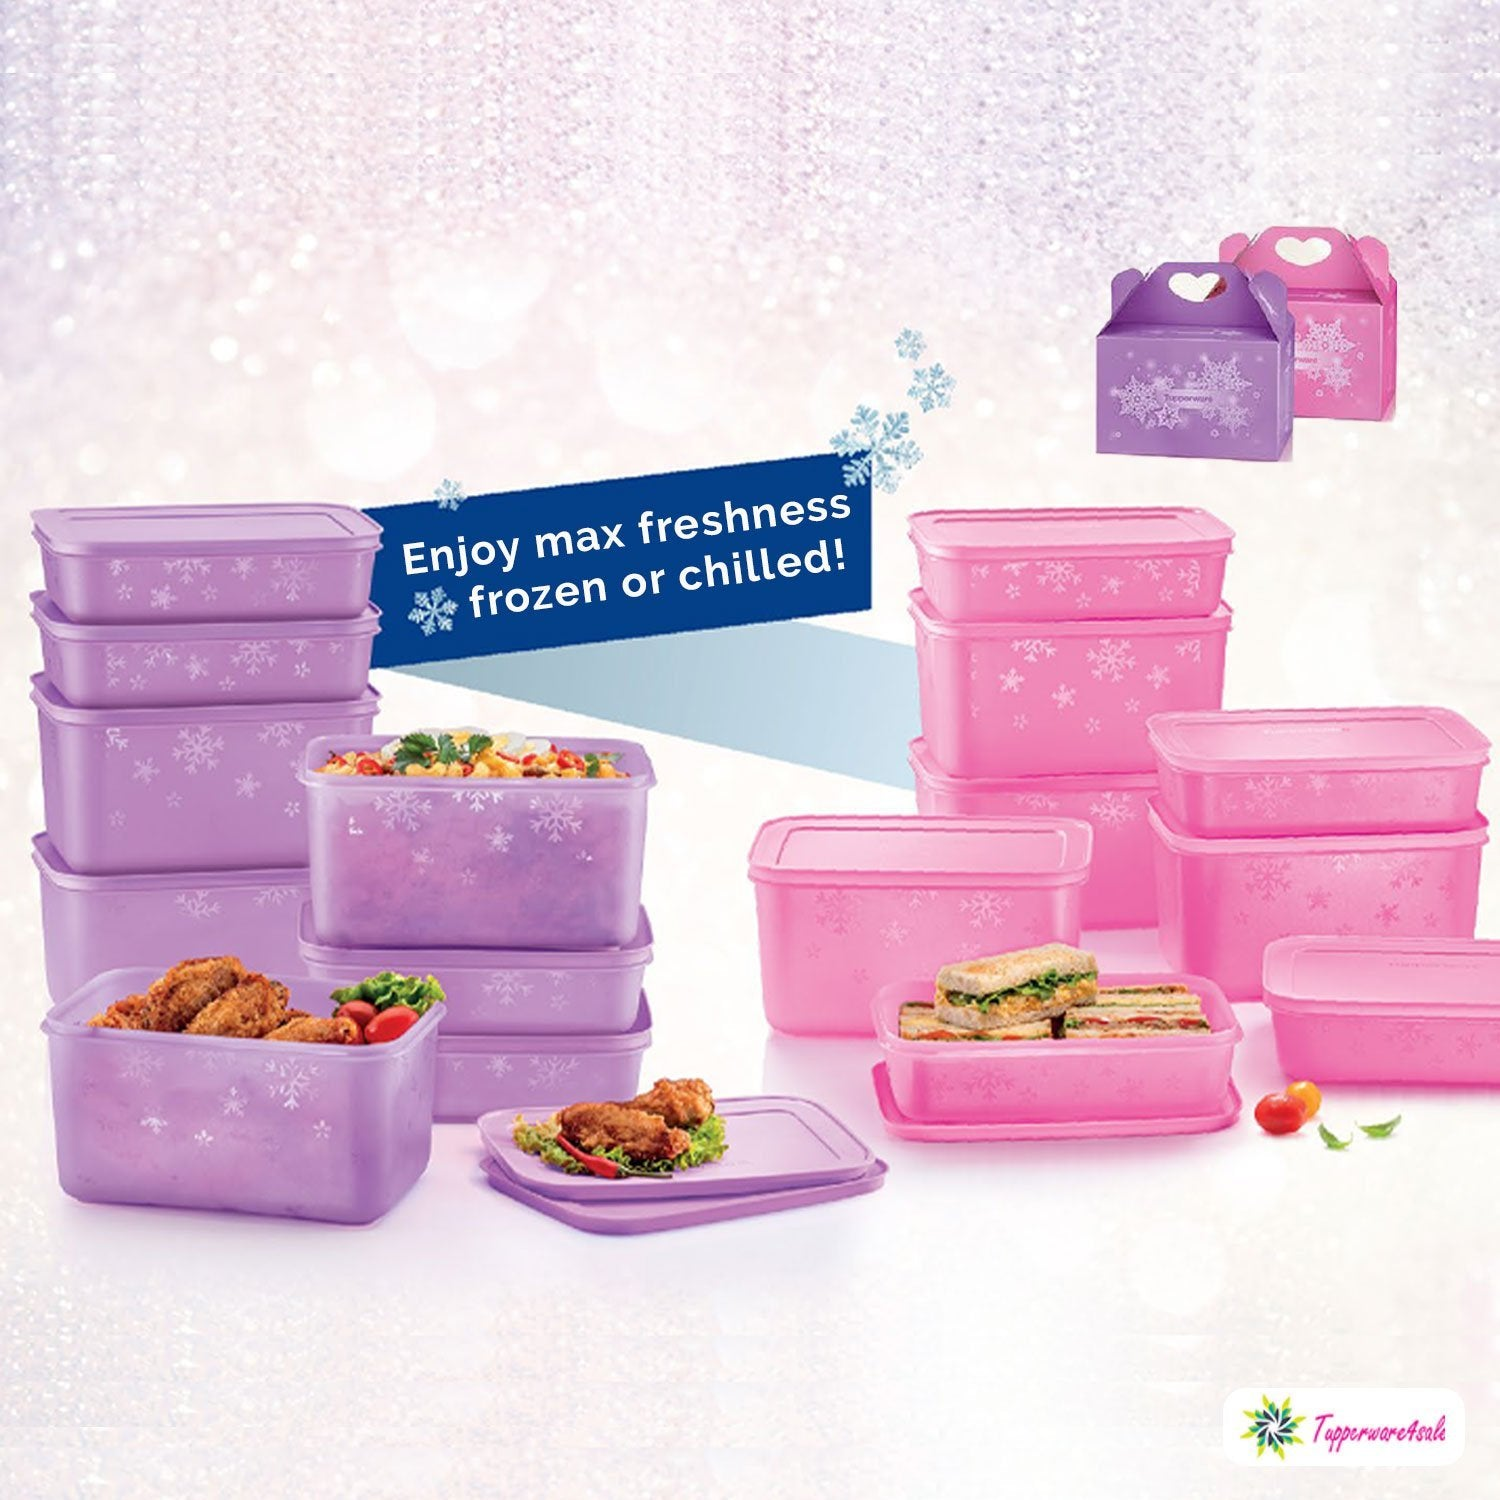 Tupperware: What's Old is New Again